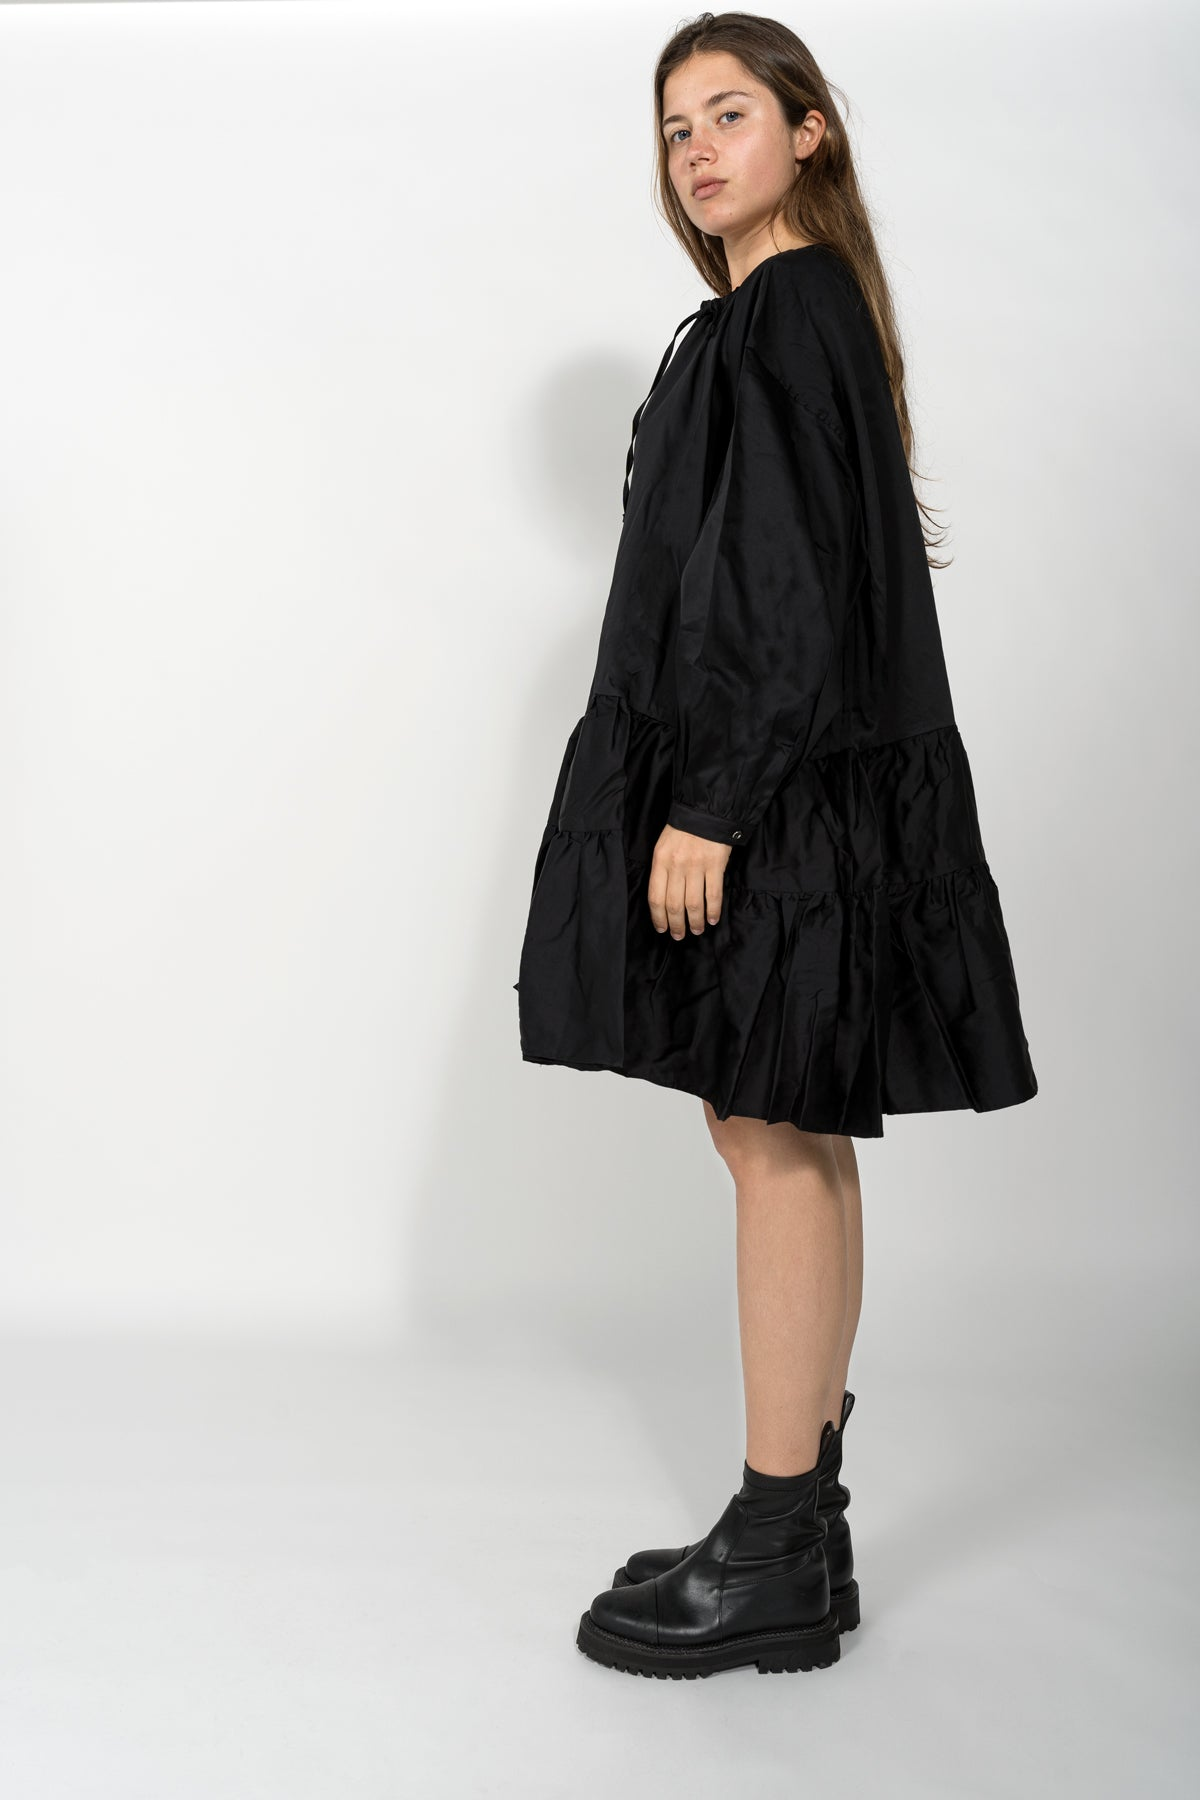 OVERSIZED TIERED GATHERED DRESS IN BLACK